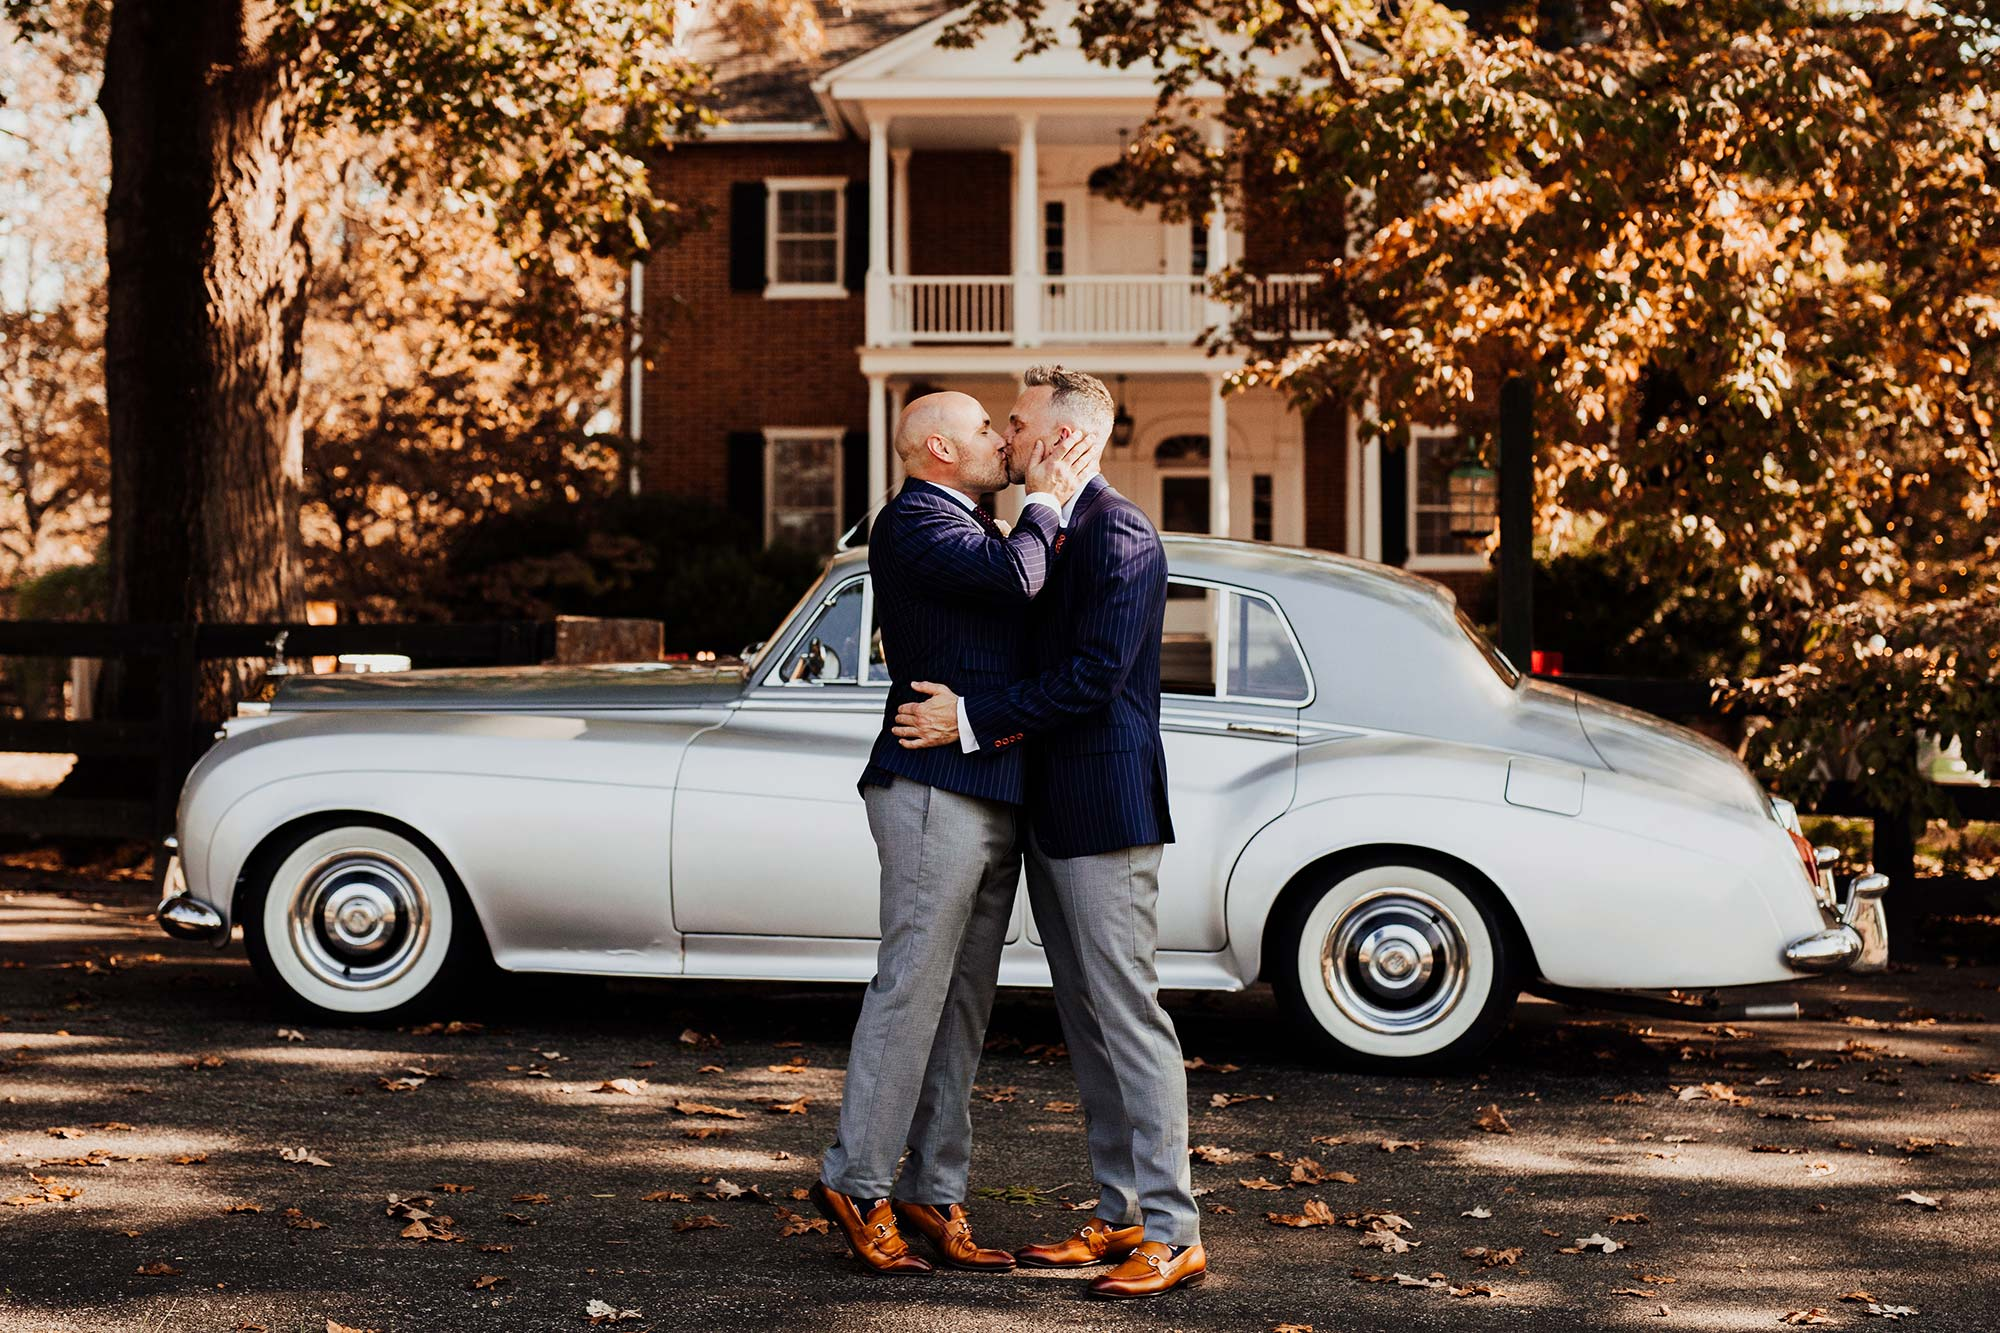 LGBTQ Louisville Kentucky Wedding at Hermitage Farm Crystal Ludwick Photo kiss in front of house and car